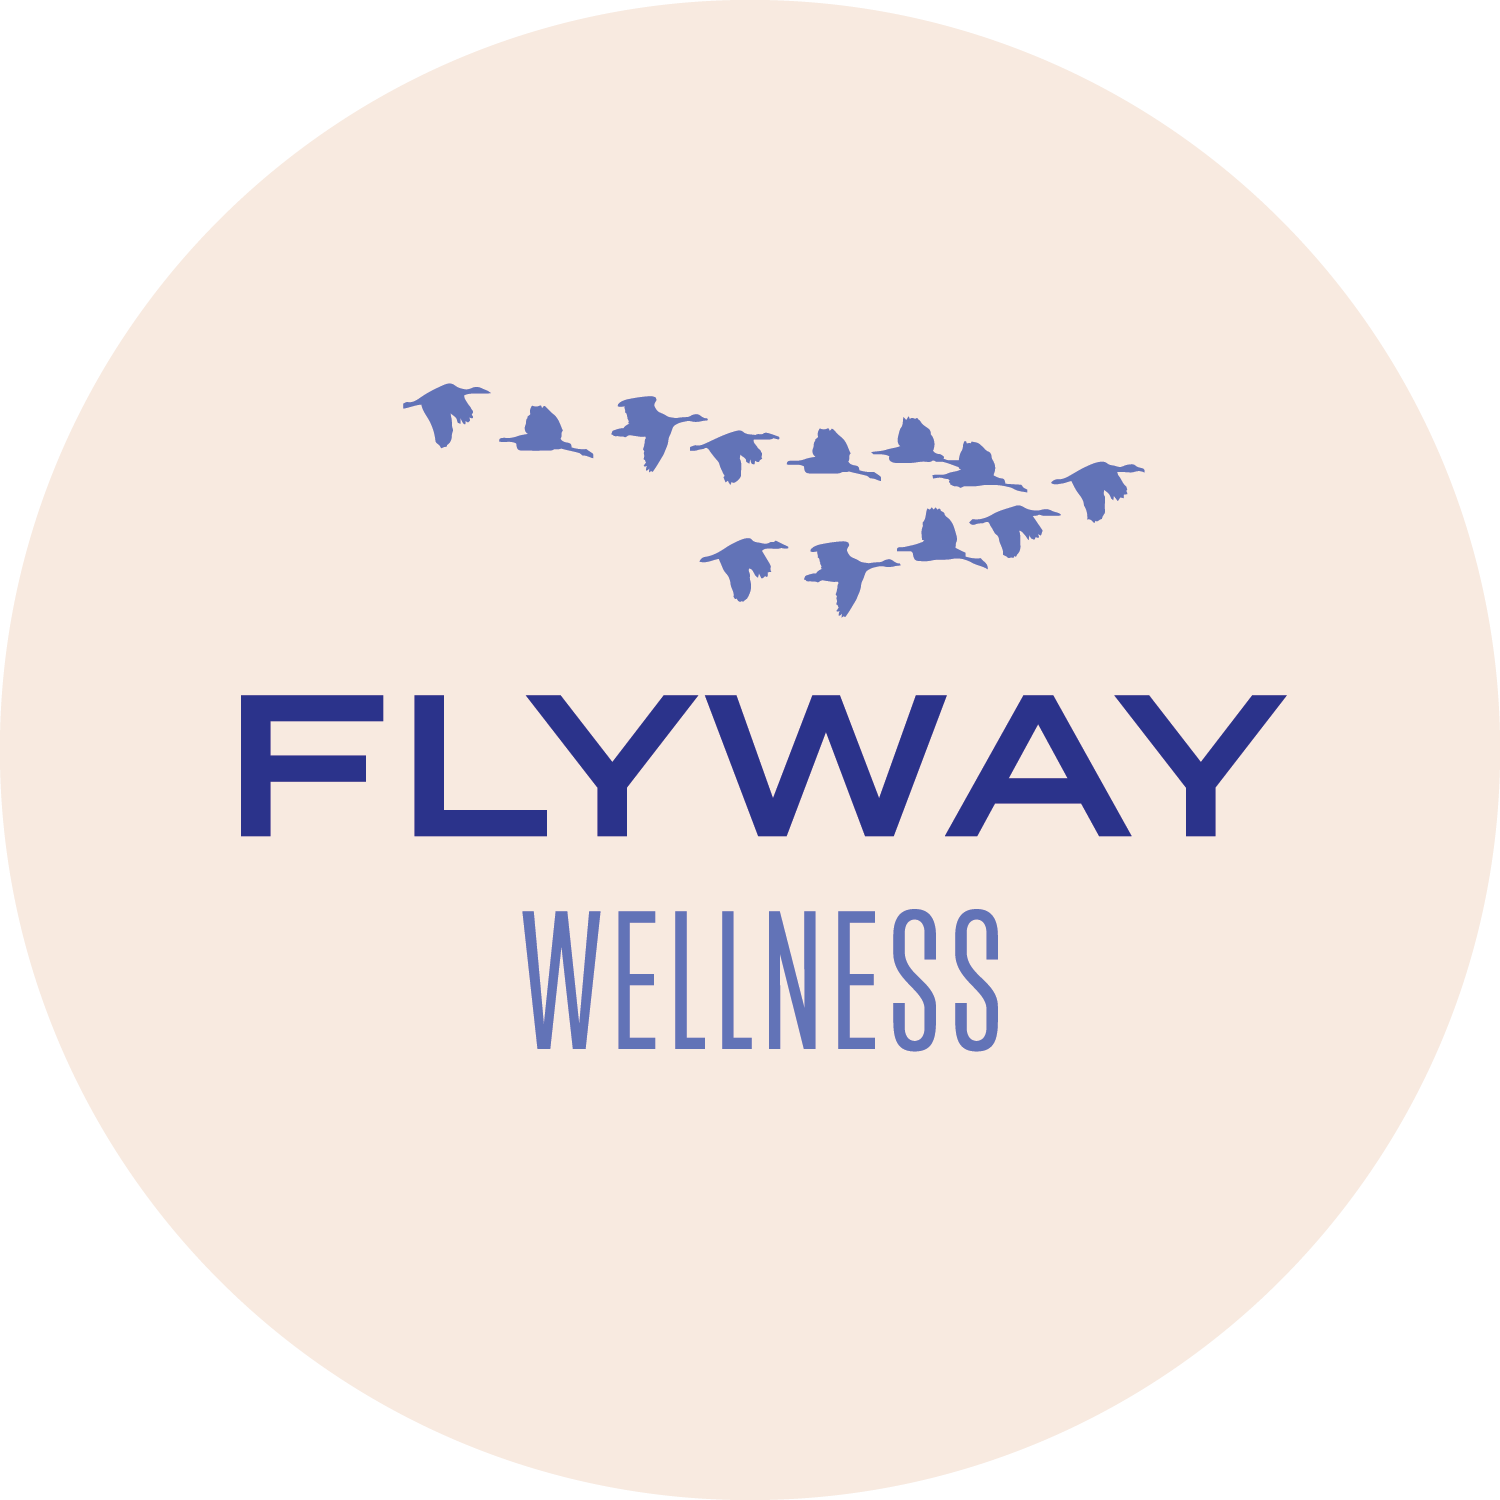 Flyway Wellness